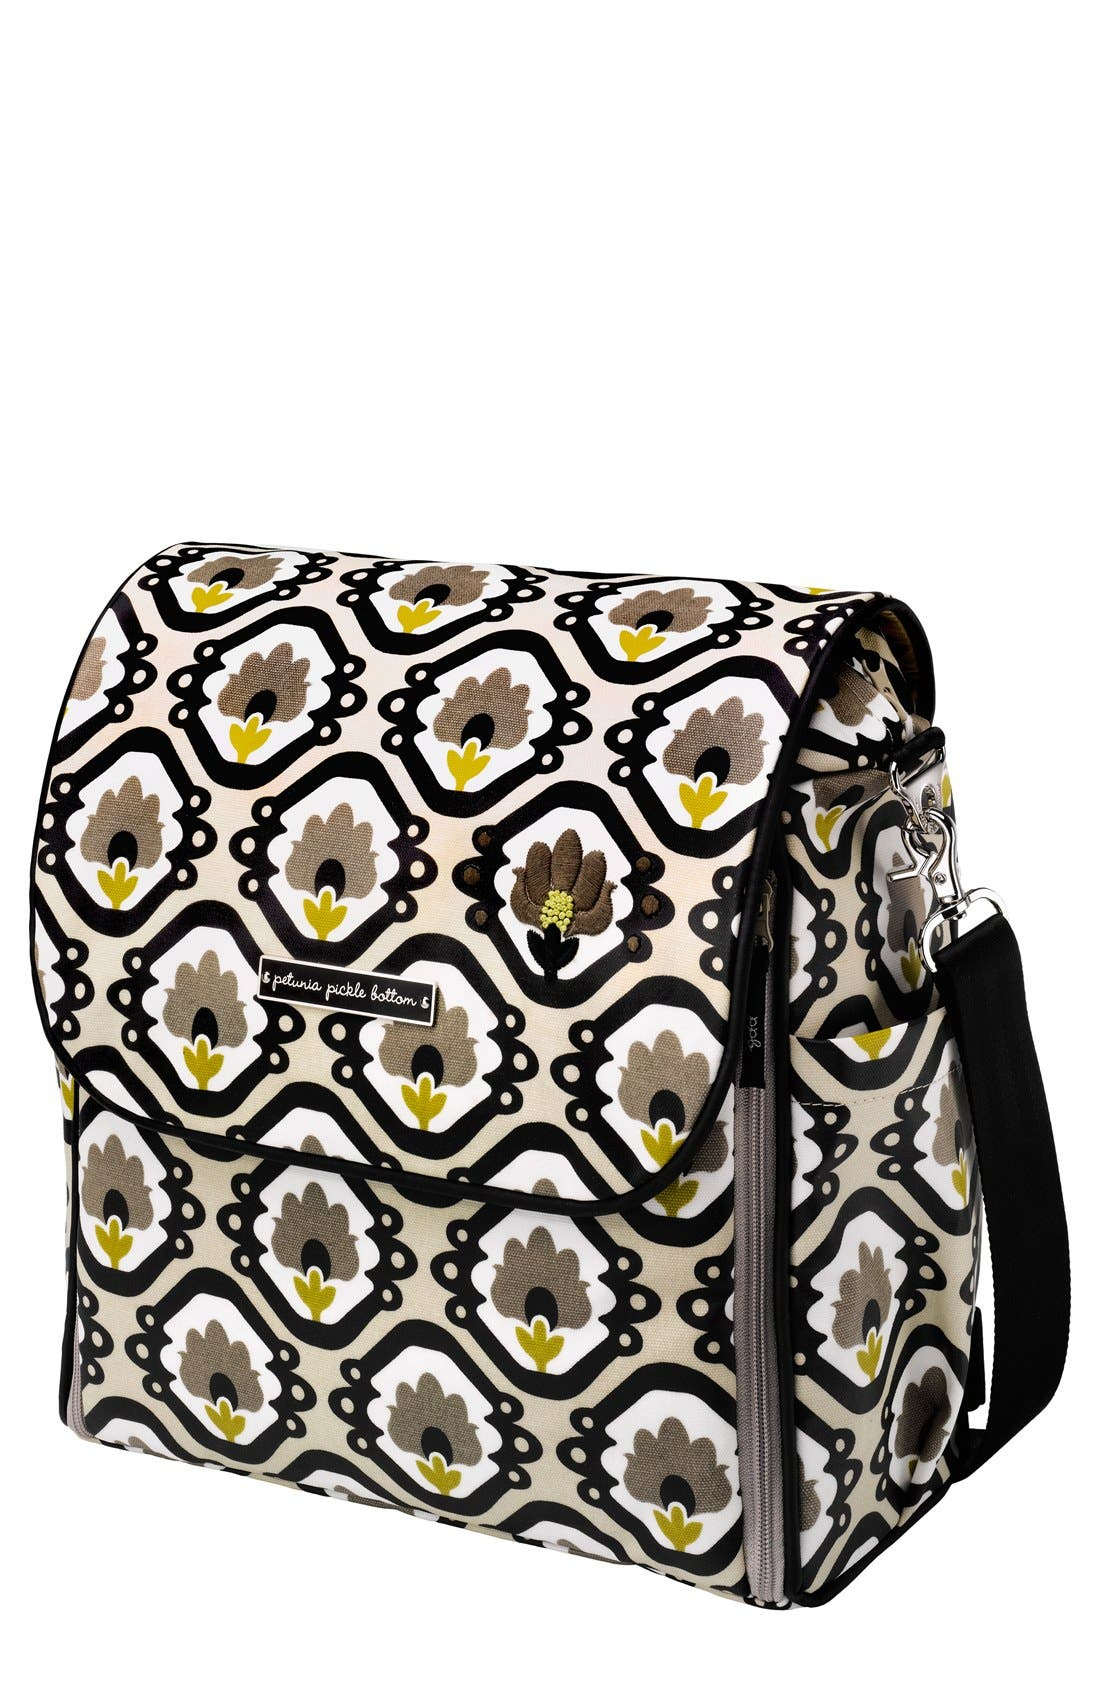 Alternate Image 1 Selected - Petunia Pickle Bottom 'Boxy Glazed - Fall 2014' Backpack Diaper Bag